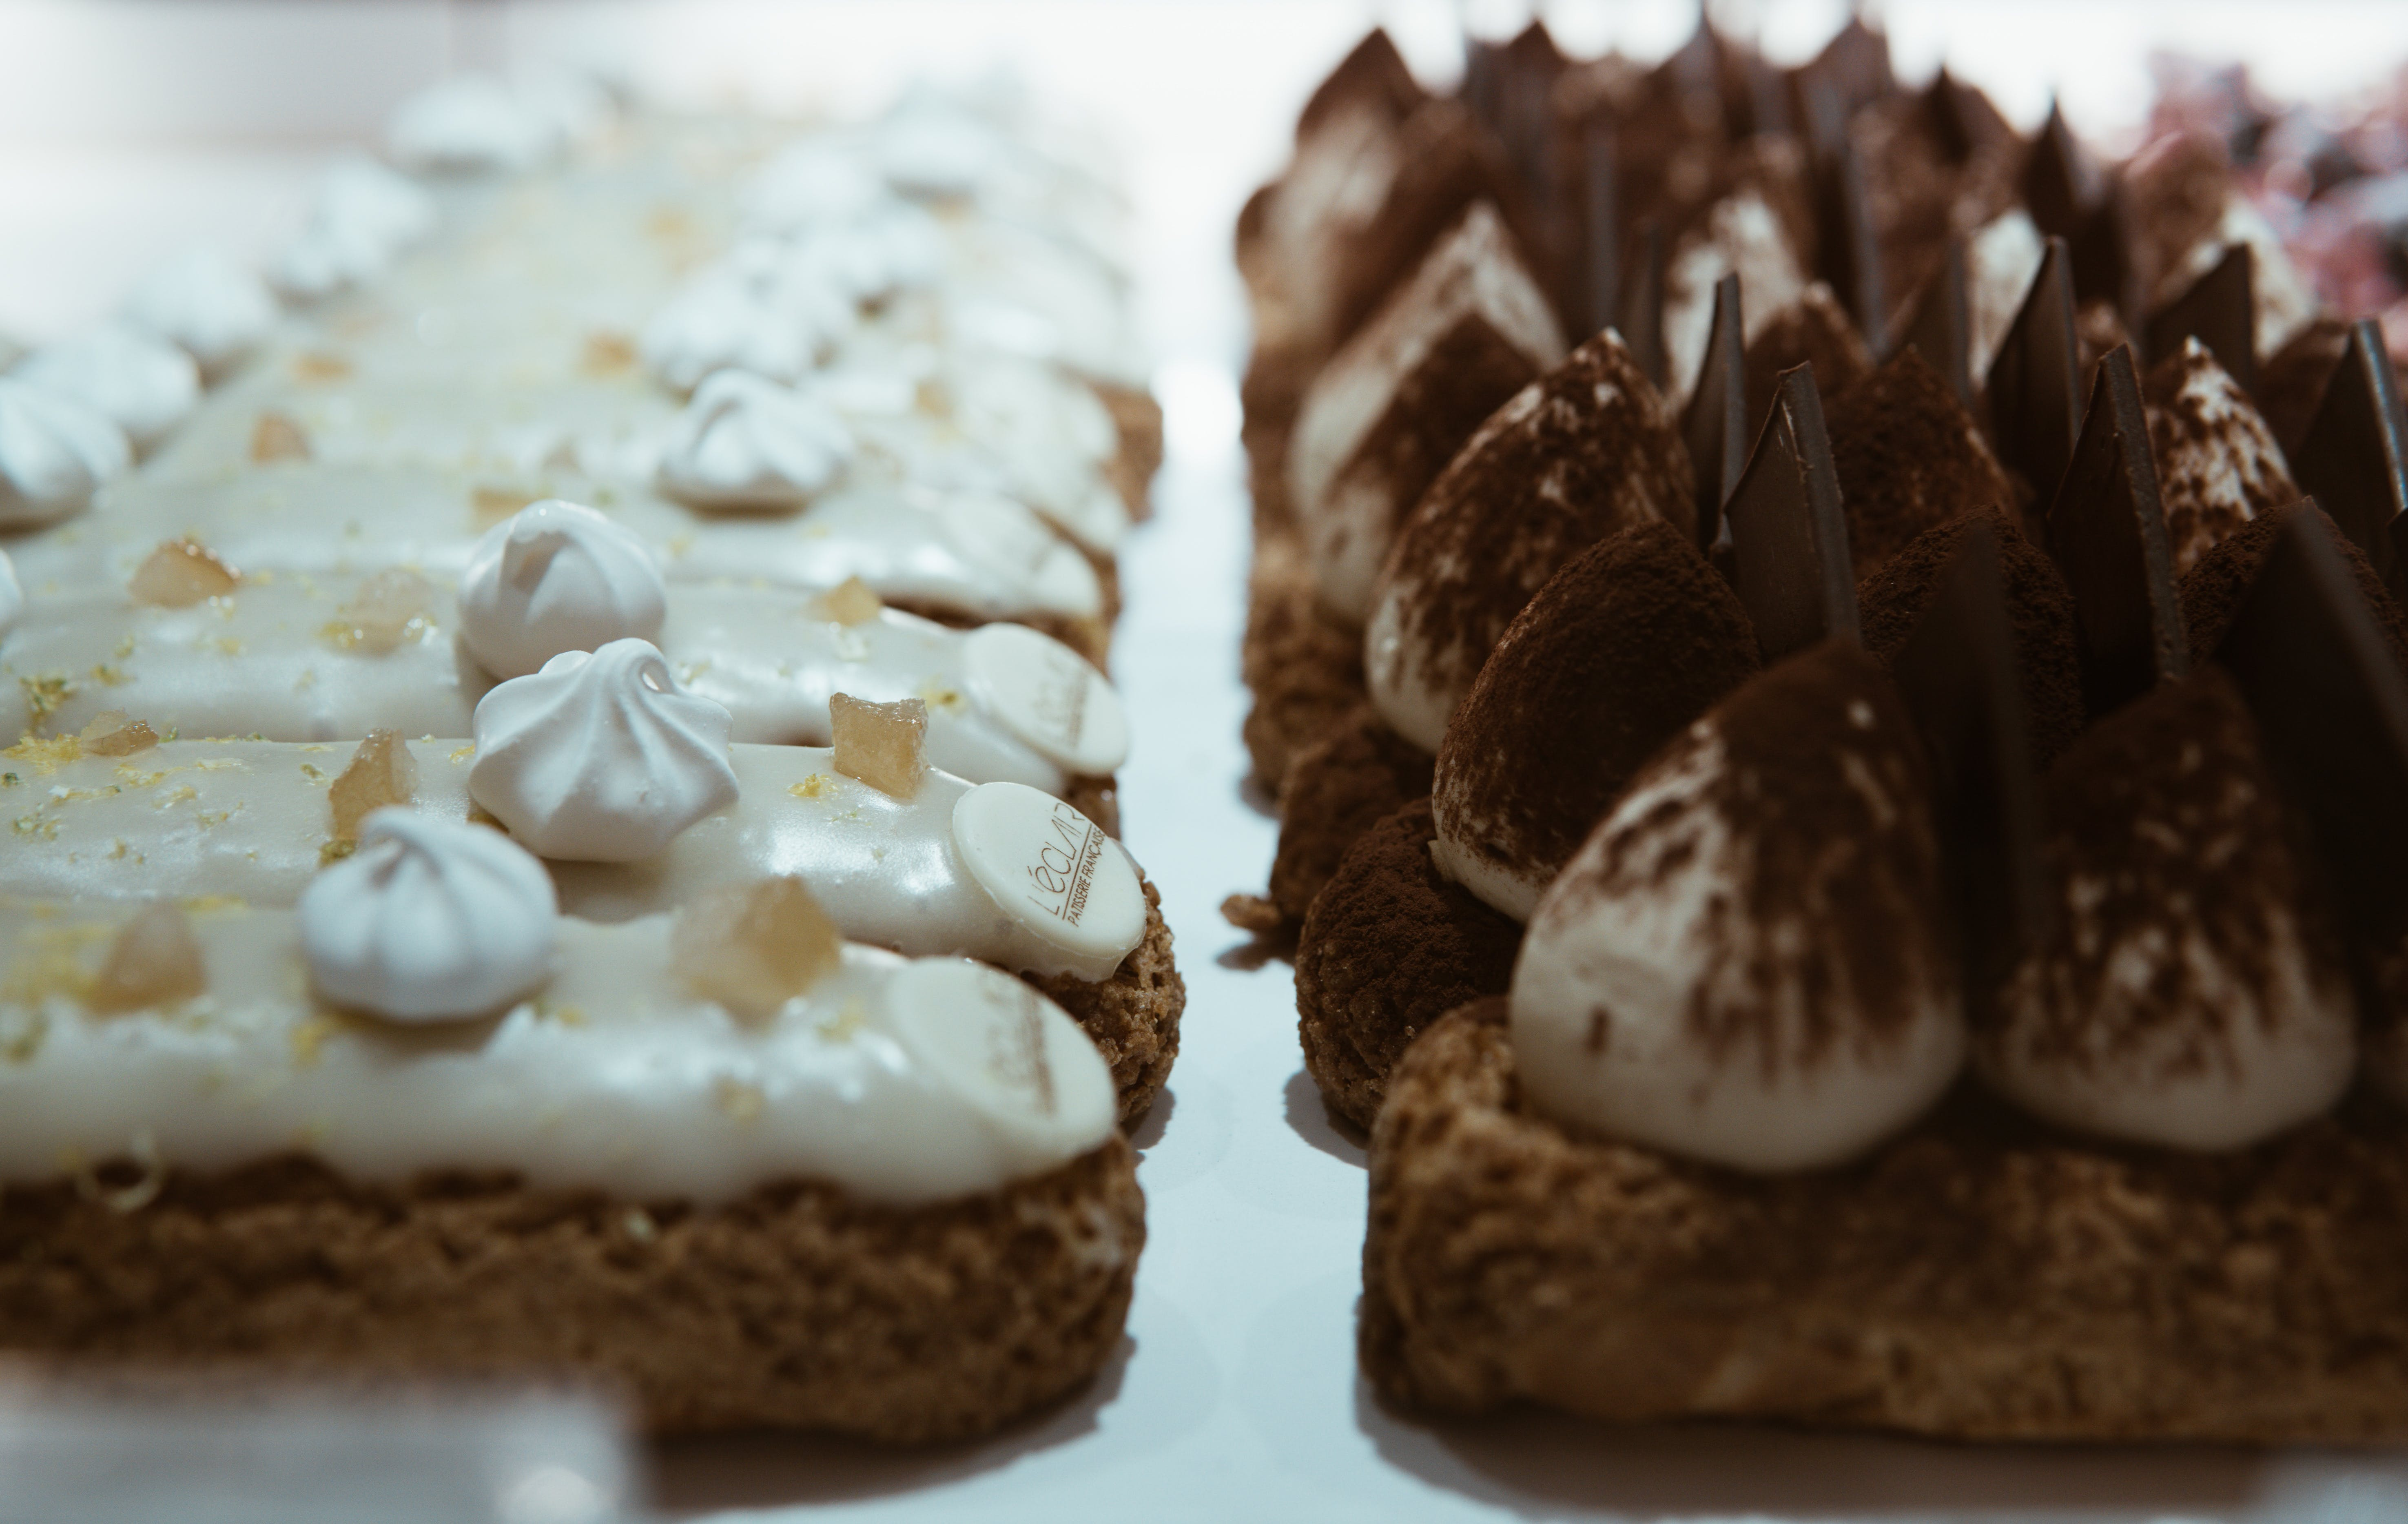 Close-up Photo of Pastry